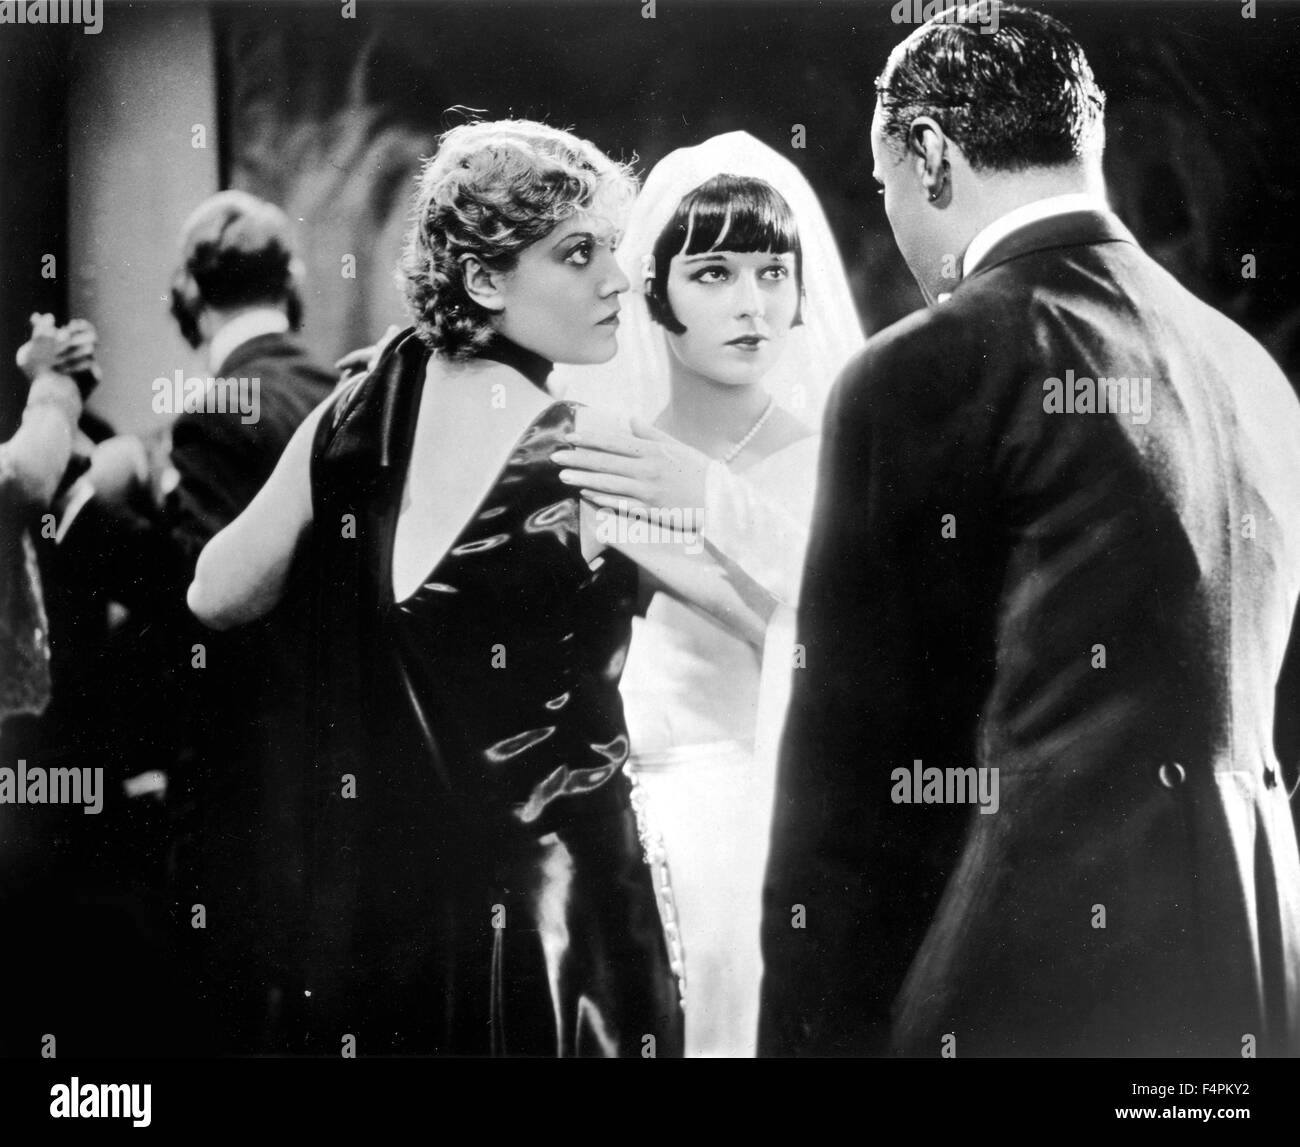 Alice Roberts and Louise Brooks / Pandora's Box / 1929 directed by Georg Wilhelm Pabst  [Nero-Film AG / Moviegraphs] - Stock Image